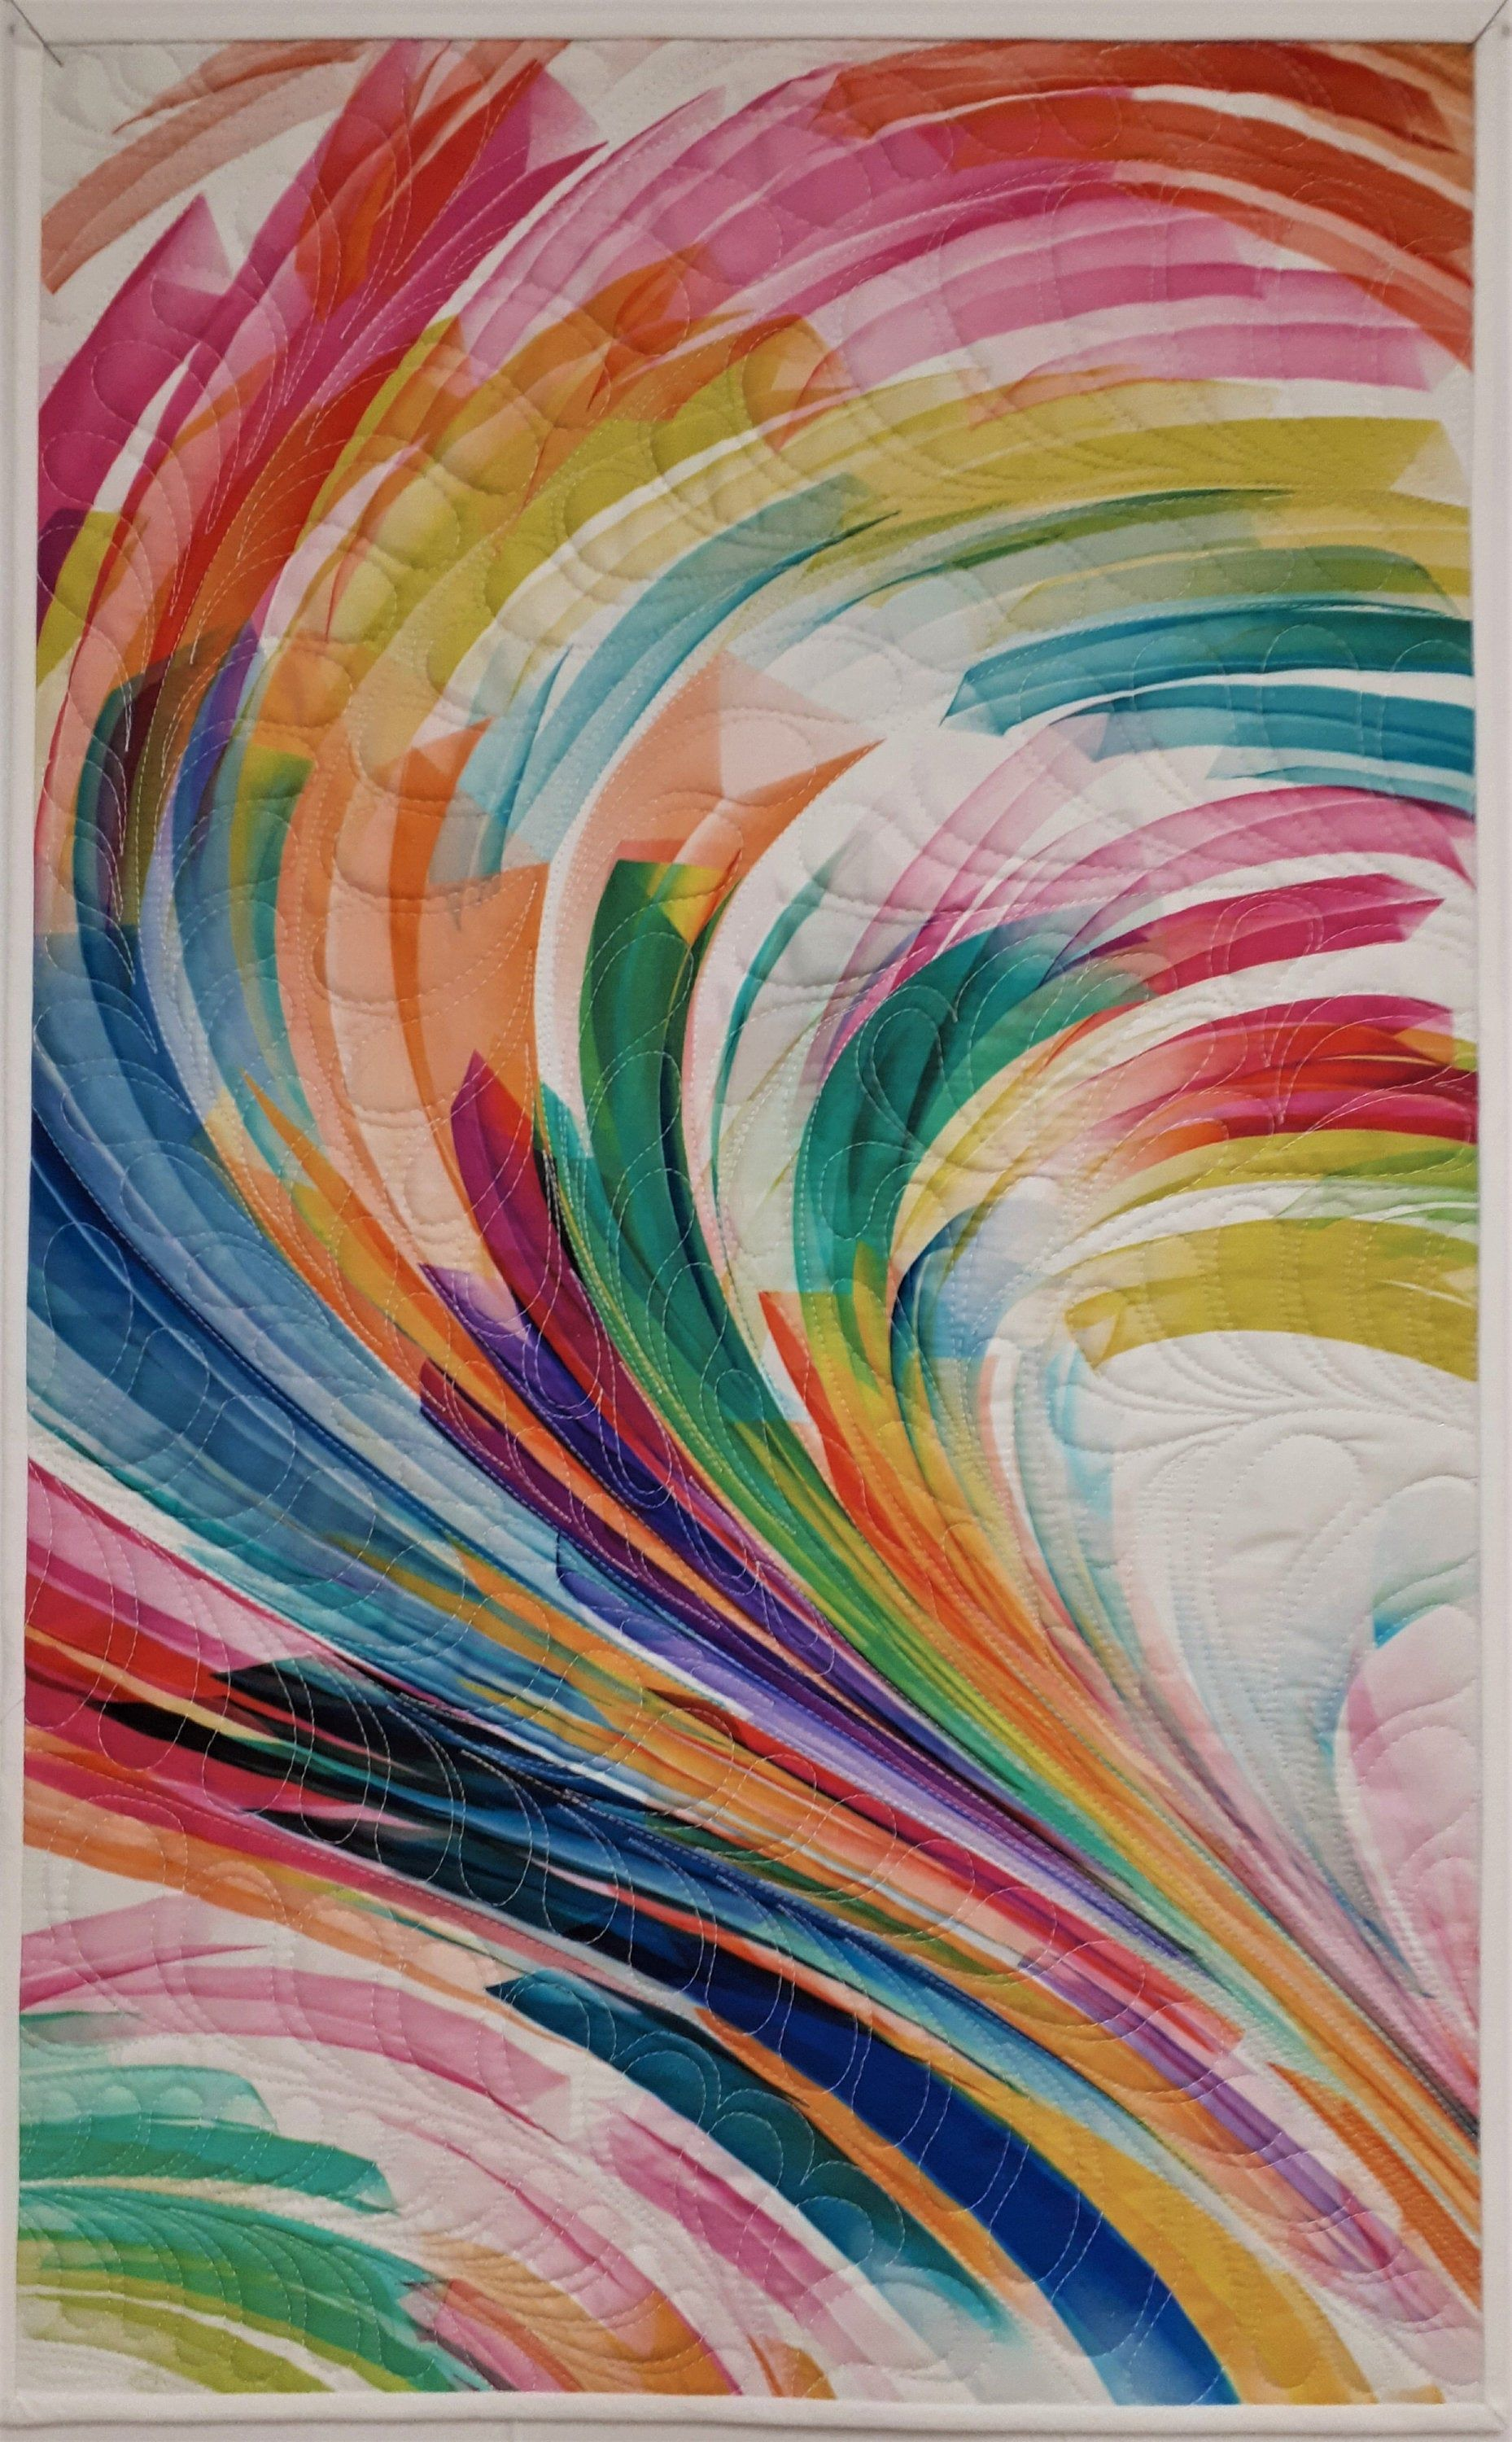 Modern Quilted Wall Hanging Abstract Rainbow Art Quilt Swirl Geo Quilted Table Runner 29 25 X18 25 In 2020 Art Quilts Rainbow Abstract Art Rainbow Art